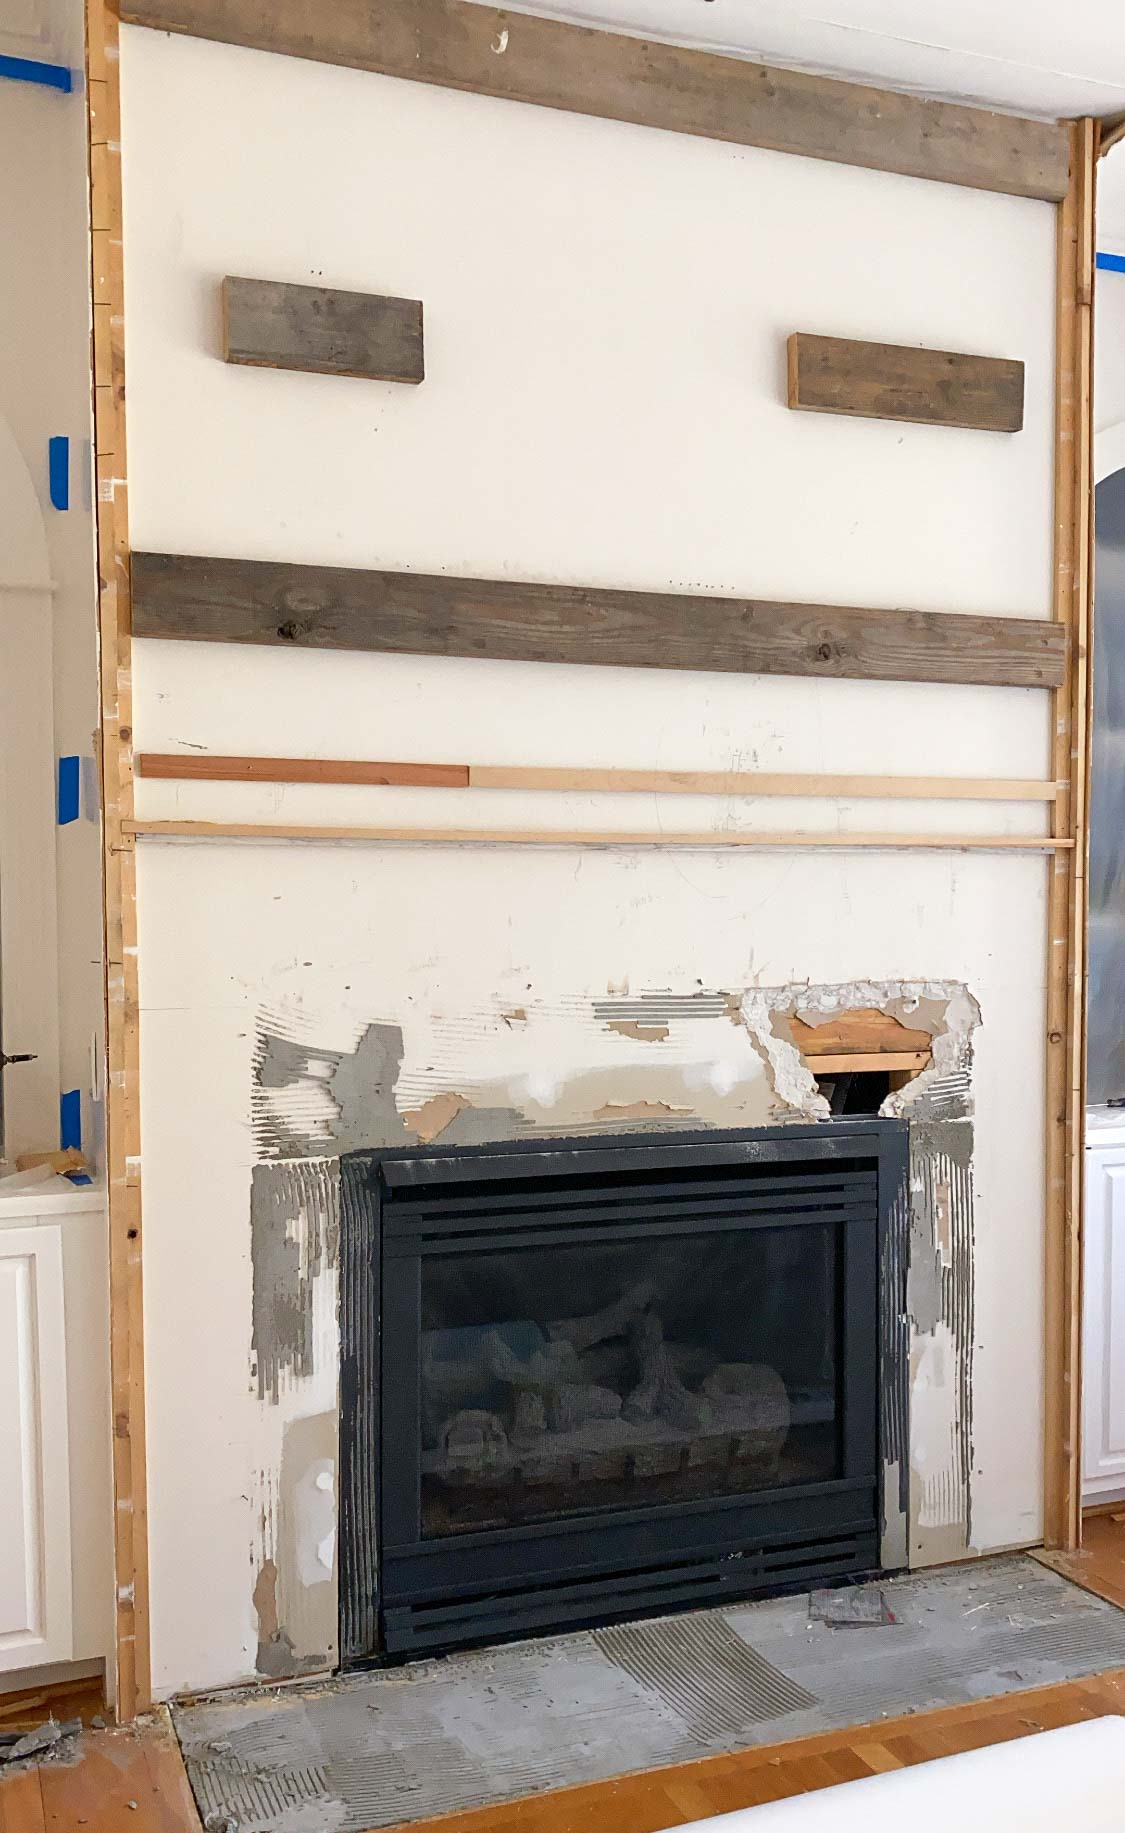 Removing the face of our fireplace to modernize the design